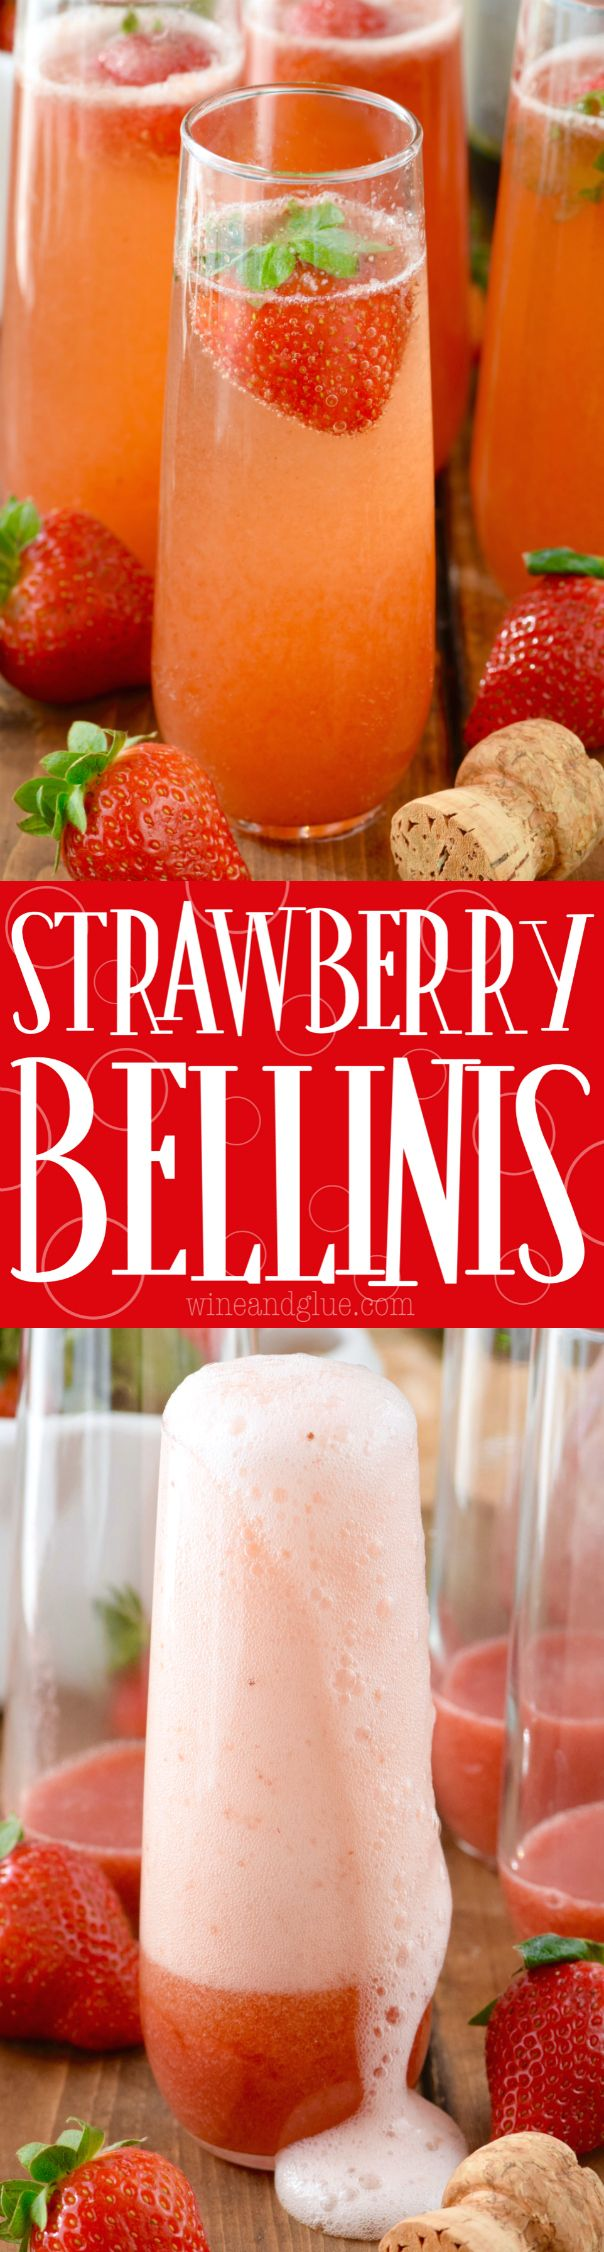 These Strawberry Bellinis are such perfect champagne cocktail for parties or brunch!